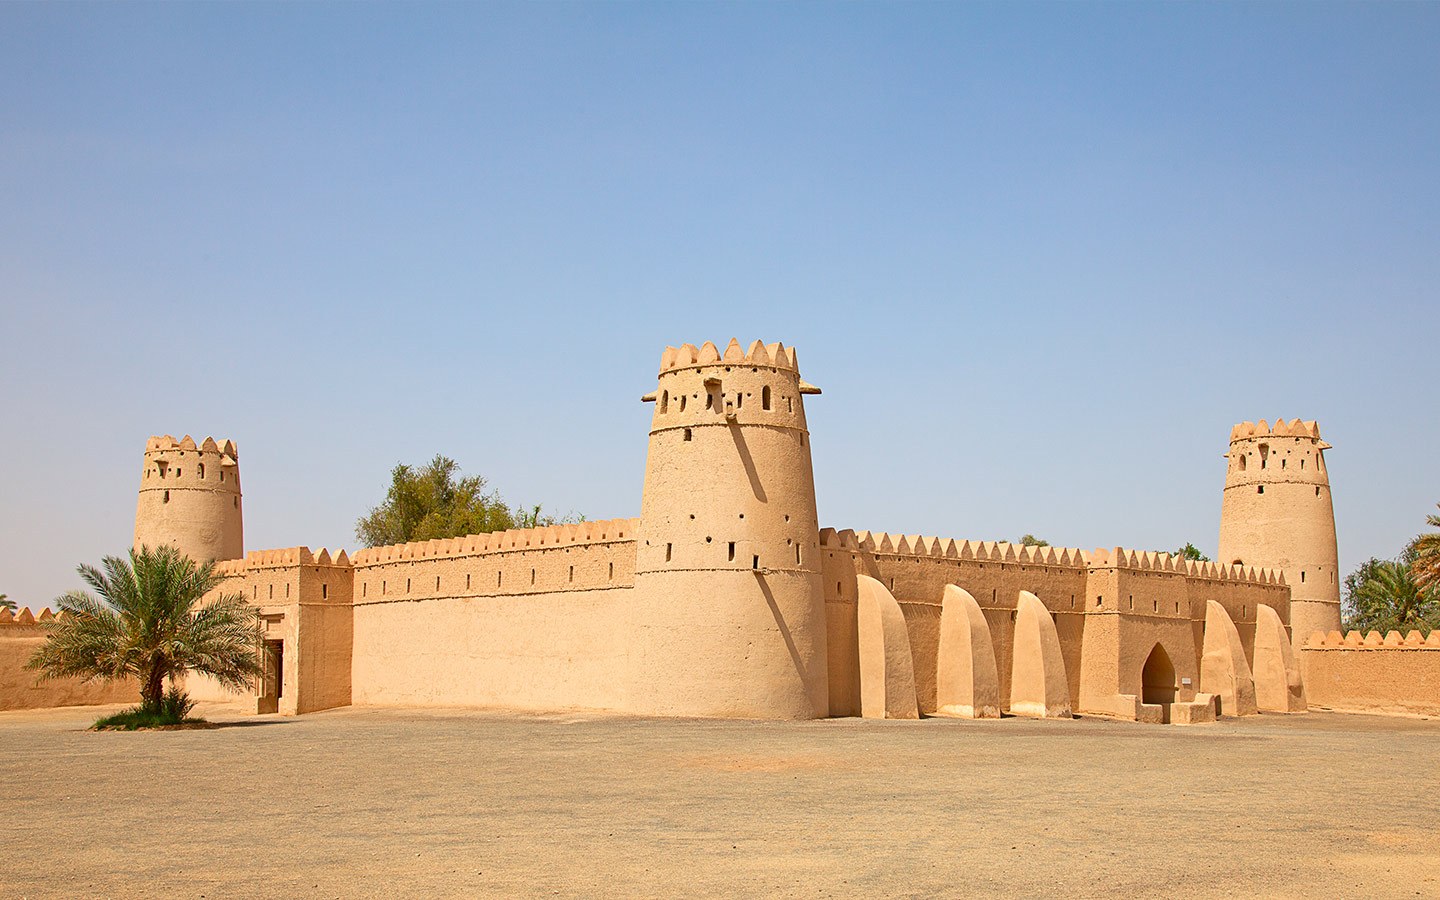 Oldest fort in UAE